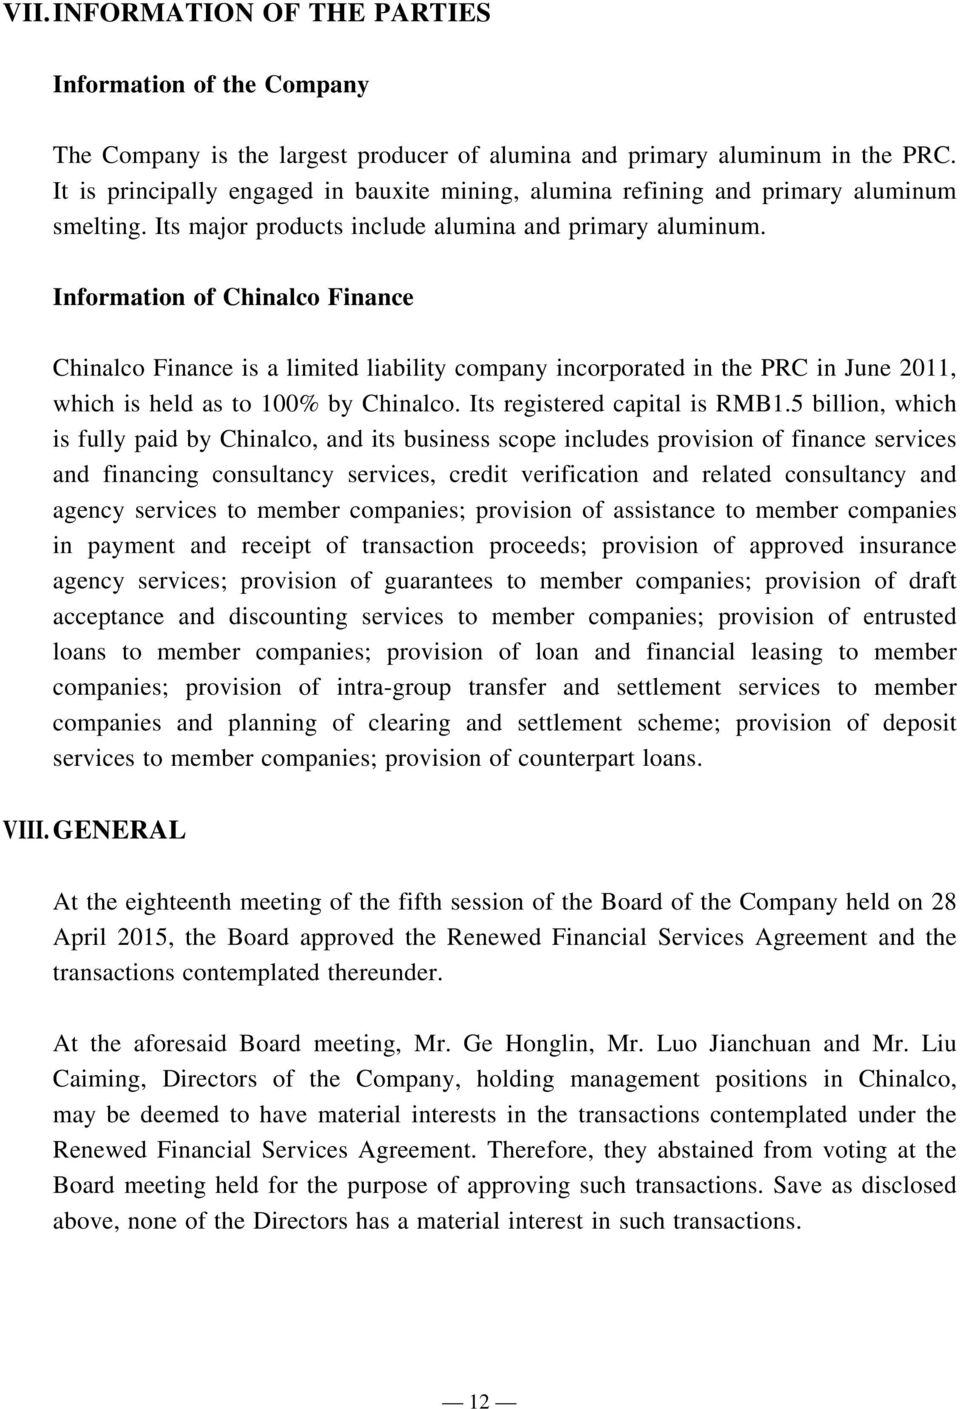 Information of Chinalco Finance Chinalco Finance is a limited liability company incorporated in the PRC in June 2011, which is held as to 100% by Chinalco. Its registered capital is RMB1.